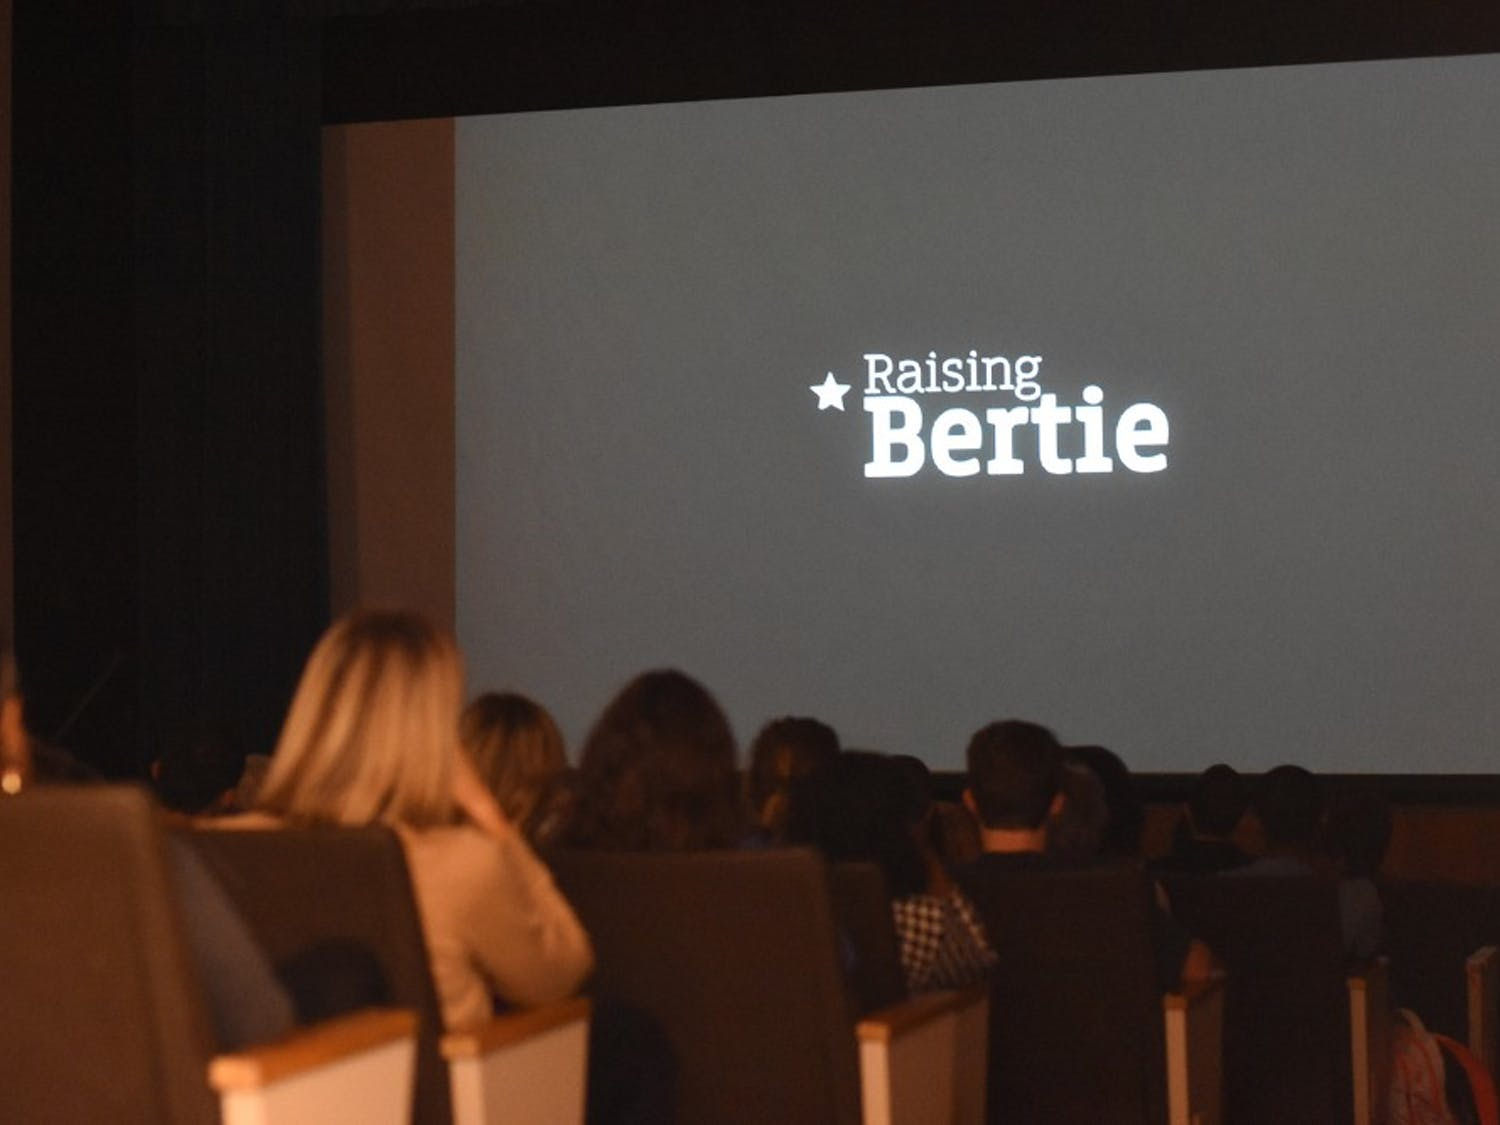 The screening of the documentary, Raising Bertie, the night before UNC SWEAT's Rural Sustainability Summit.